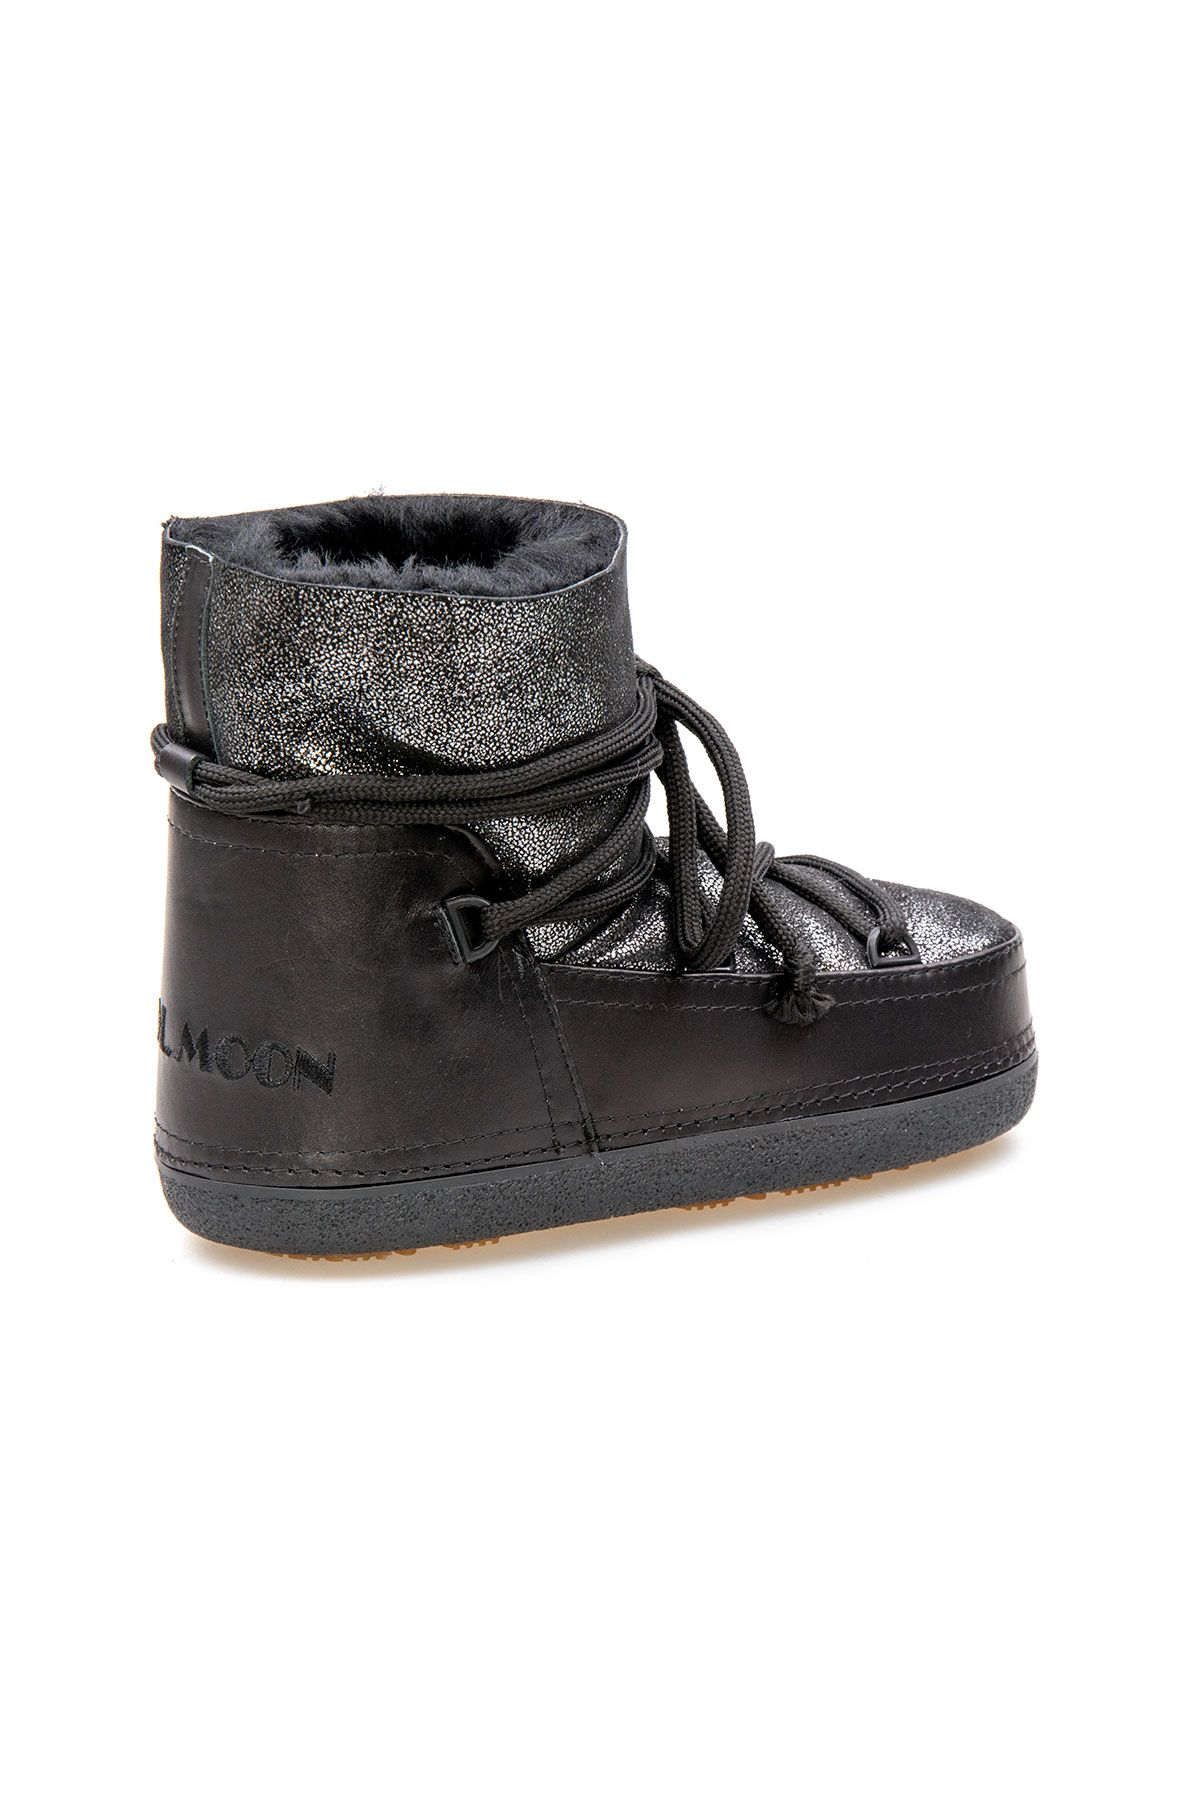 Cool Moon Genuine Sheepskin Women's Snow Boots 251308 Black